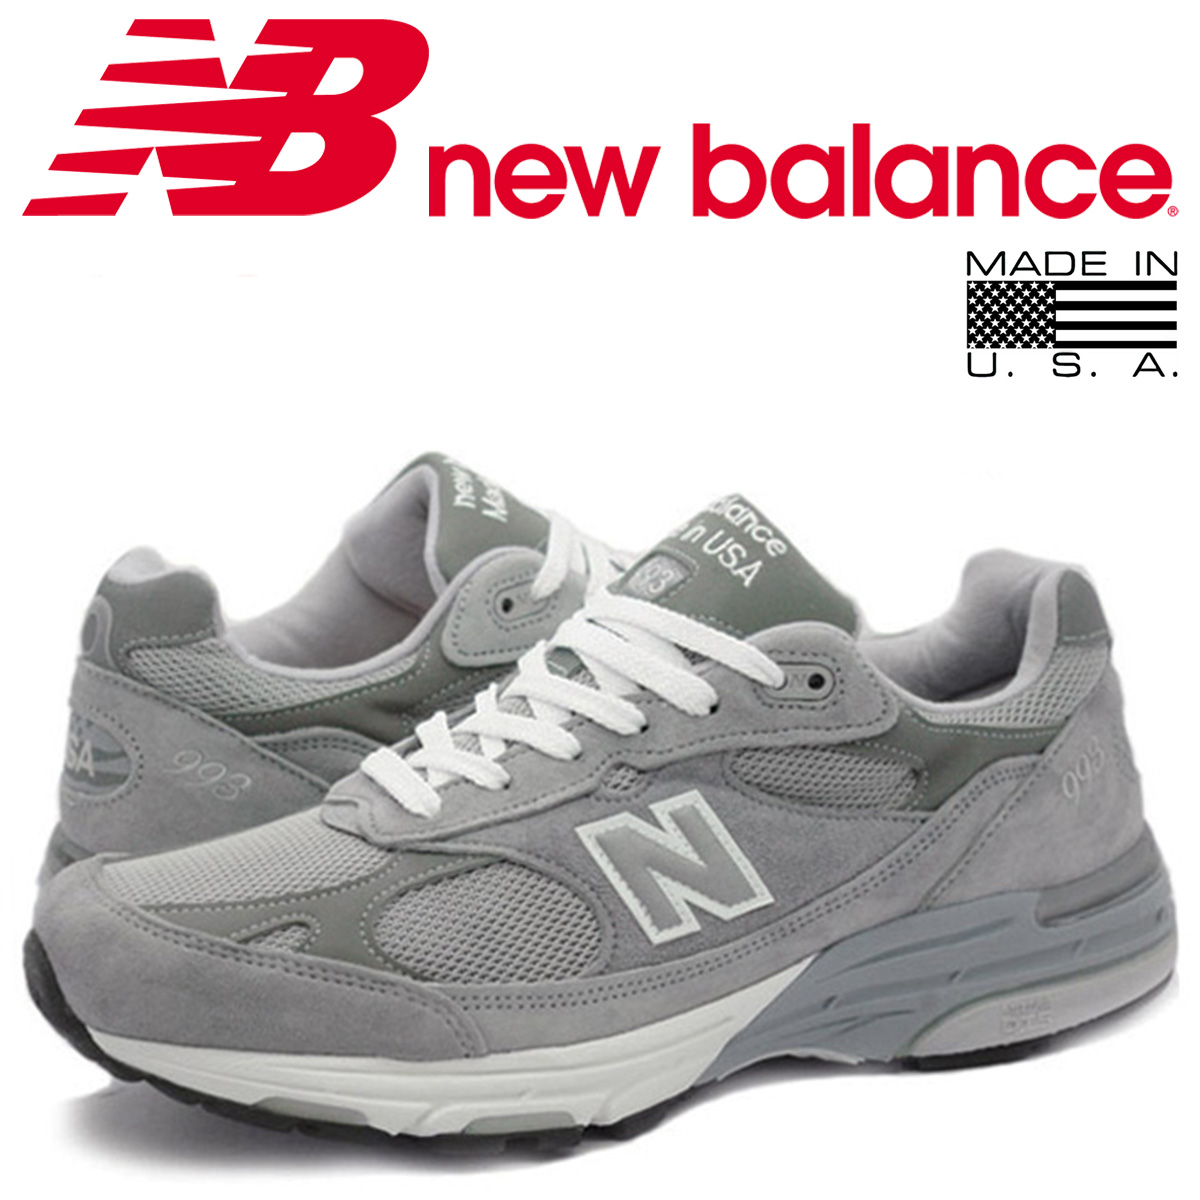 617d305938c29 ... spain new balance mr993gl 993 mens new balance sneakers d wise made in  usa gray 186